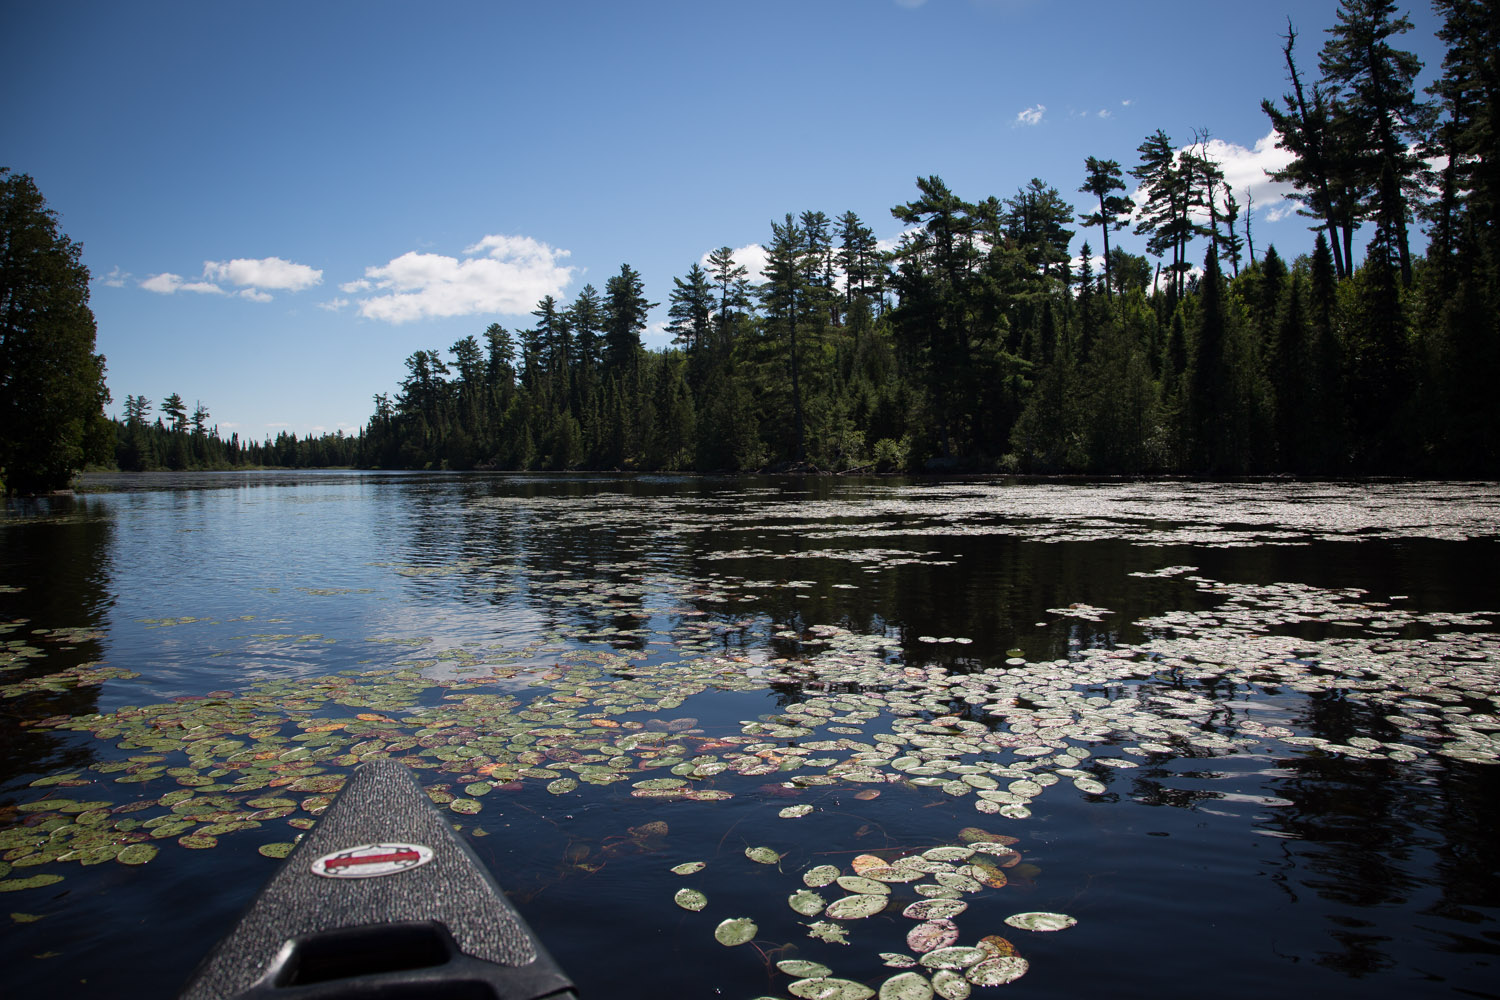 08-horseshoe-lake-canoe-northen-minnesota-old-town-lily-pads-looking-for-moose-mahonen-photography-bwca.jpg